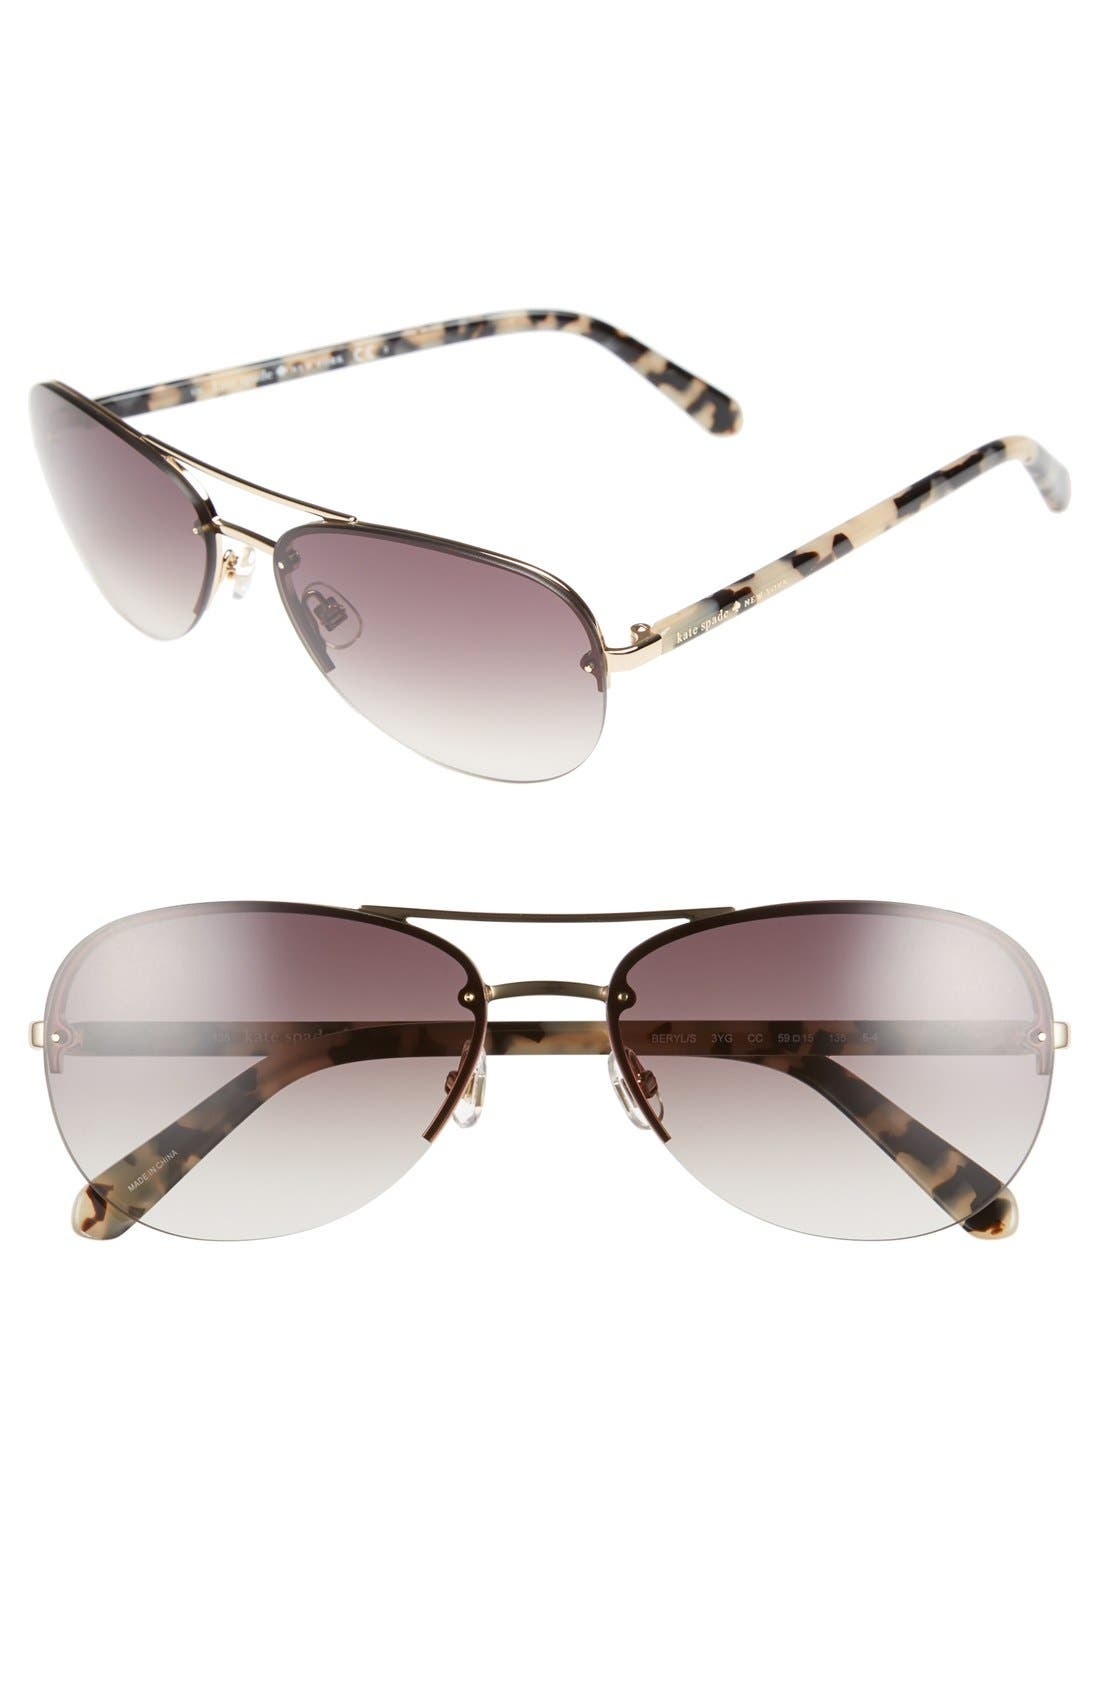 Alternate Image 1 Selected - kate spade new york 'beryls' 59mm sunglasses